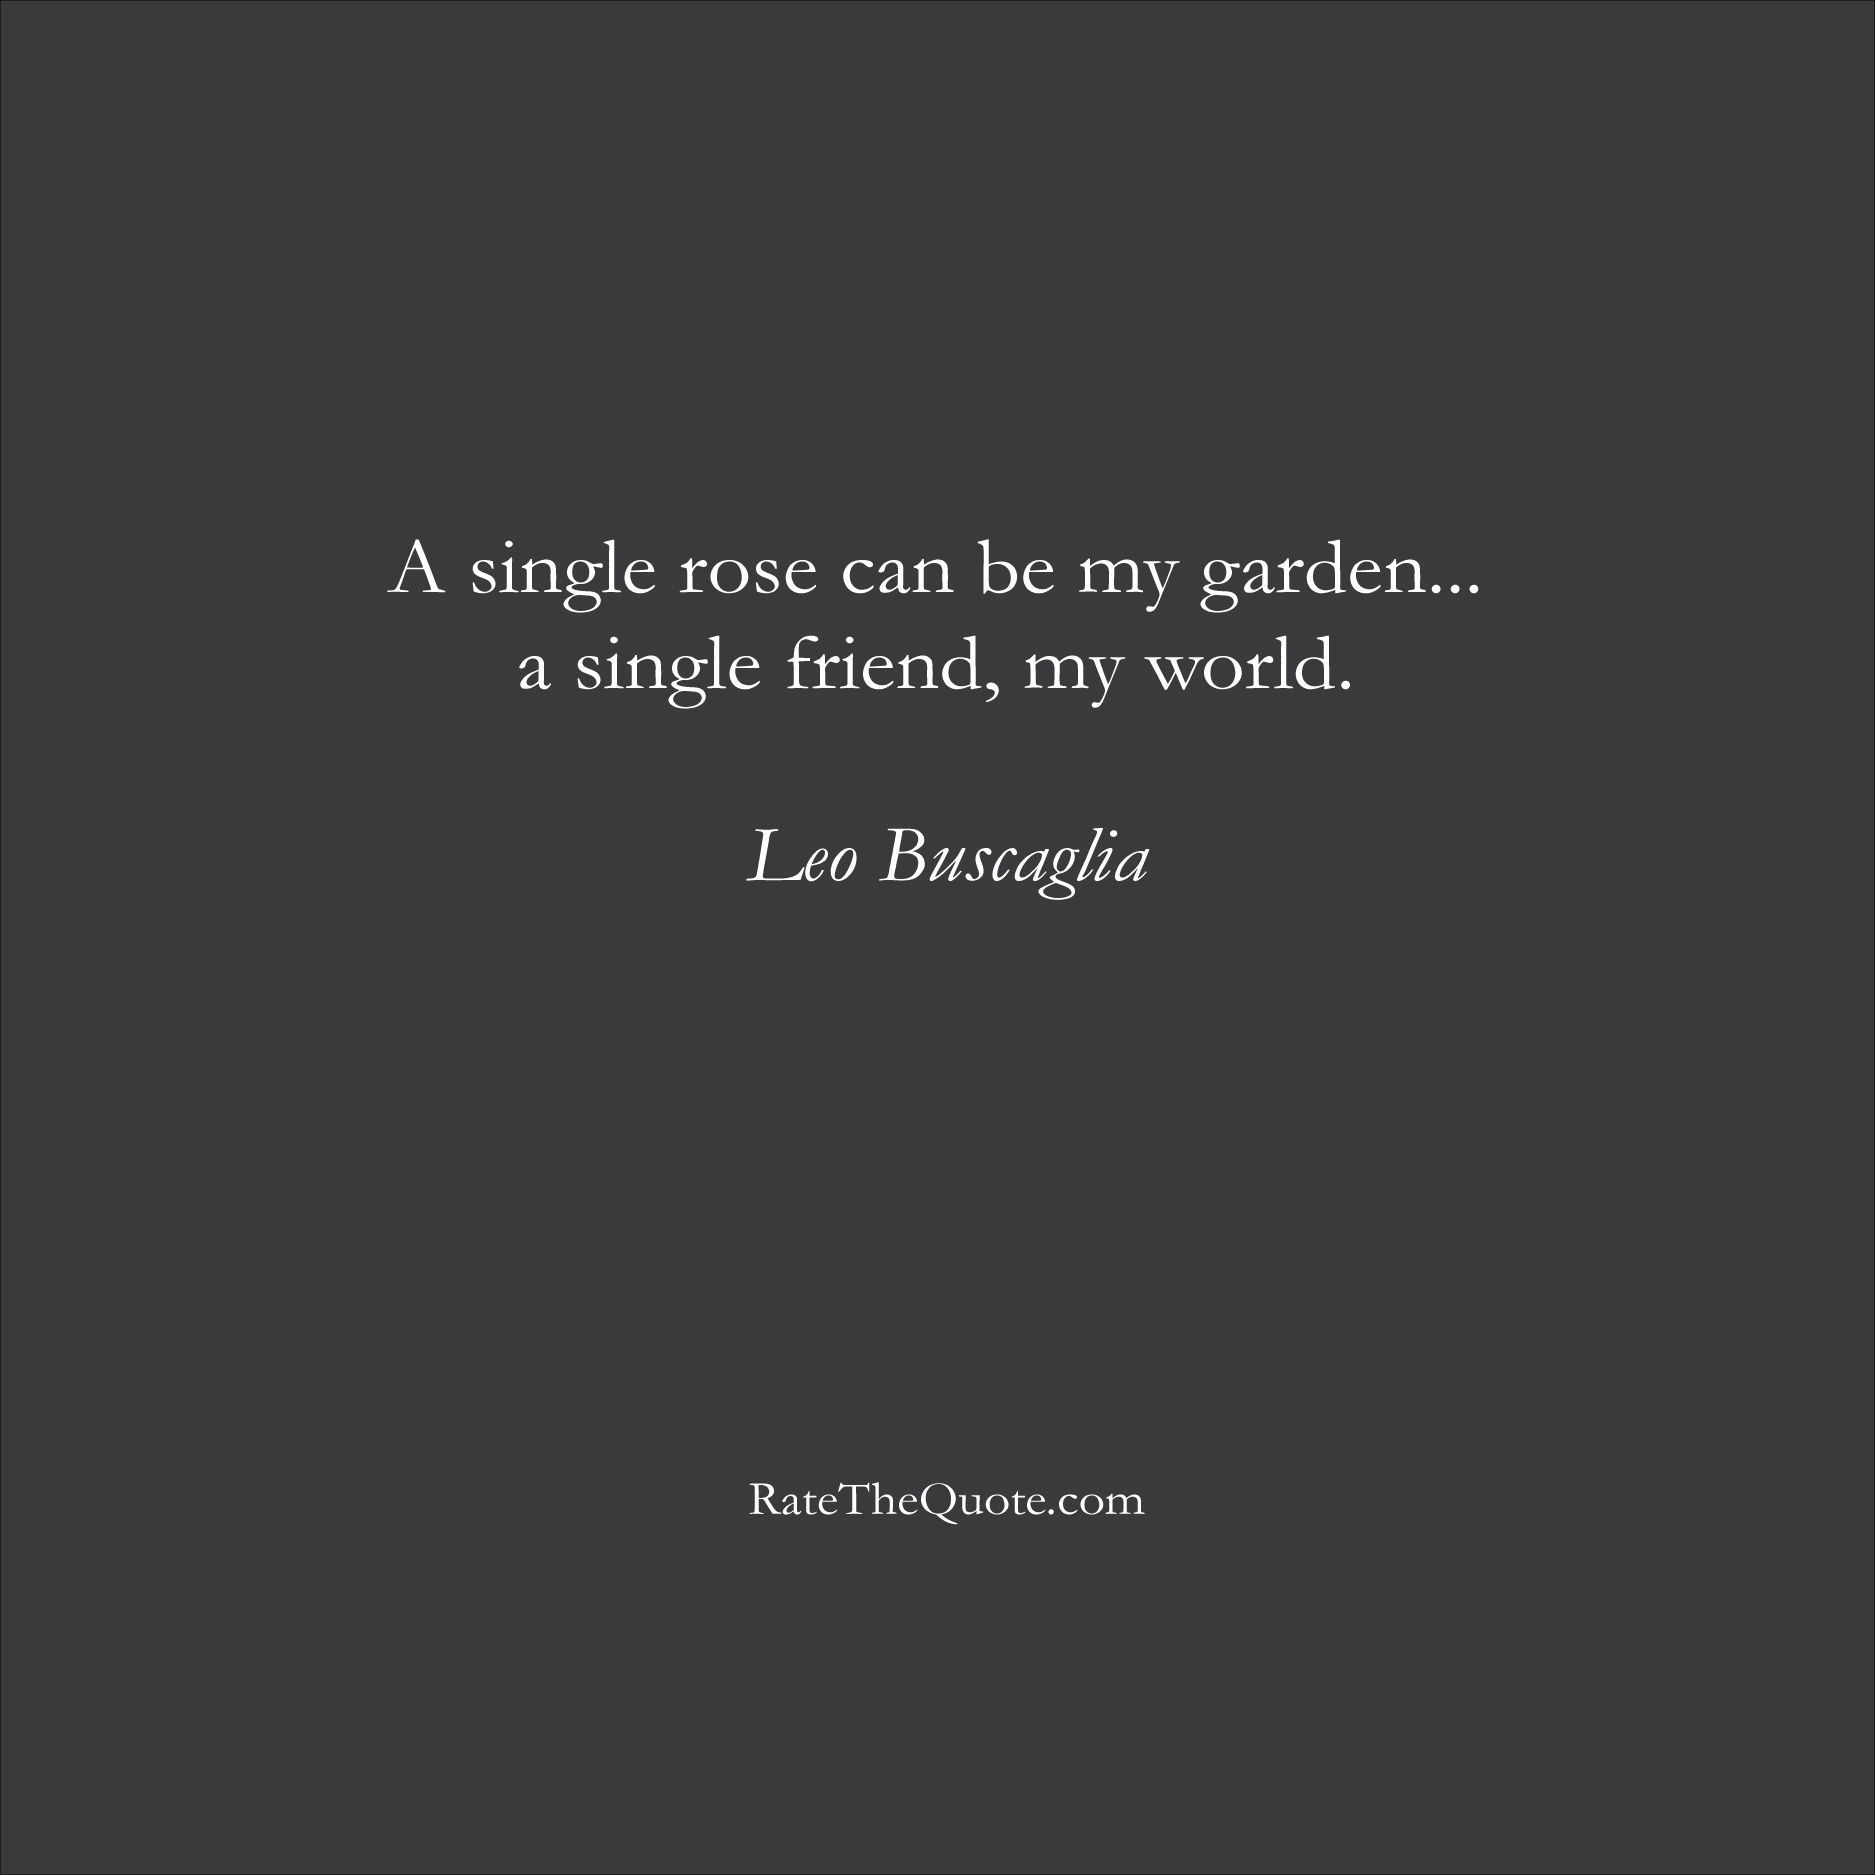 Friendship Quotes A single rose can be my garden... a single friend, my world. Leo Buscaglia